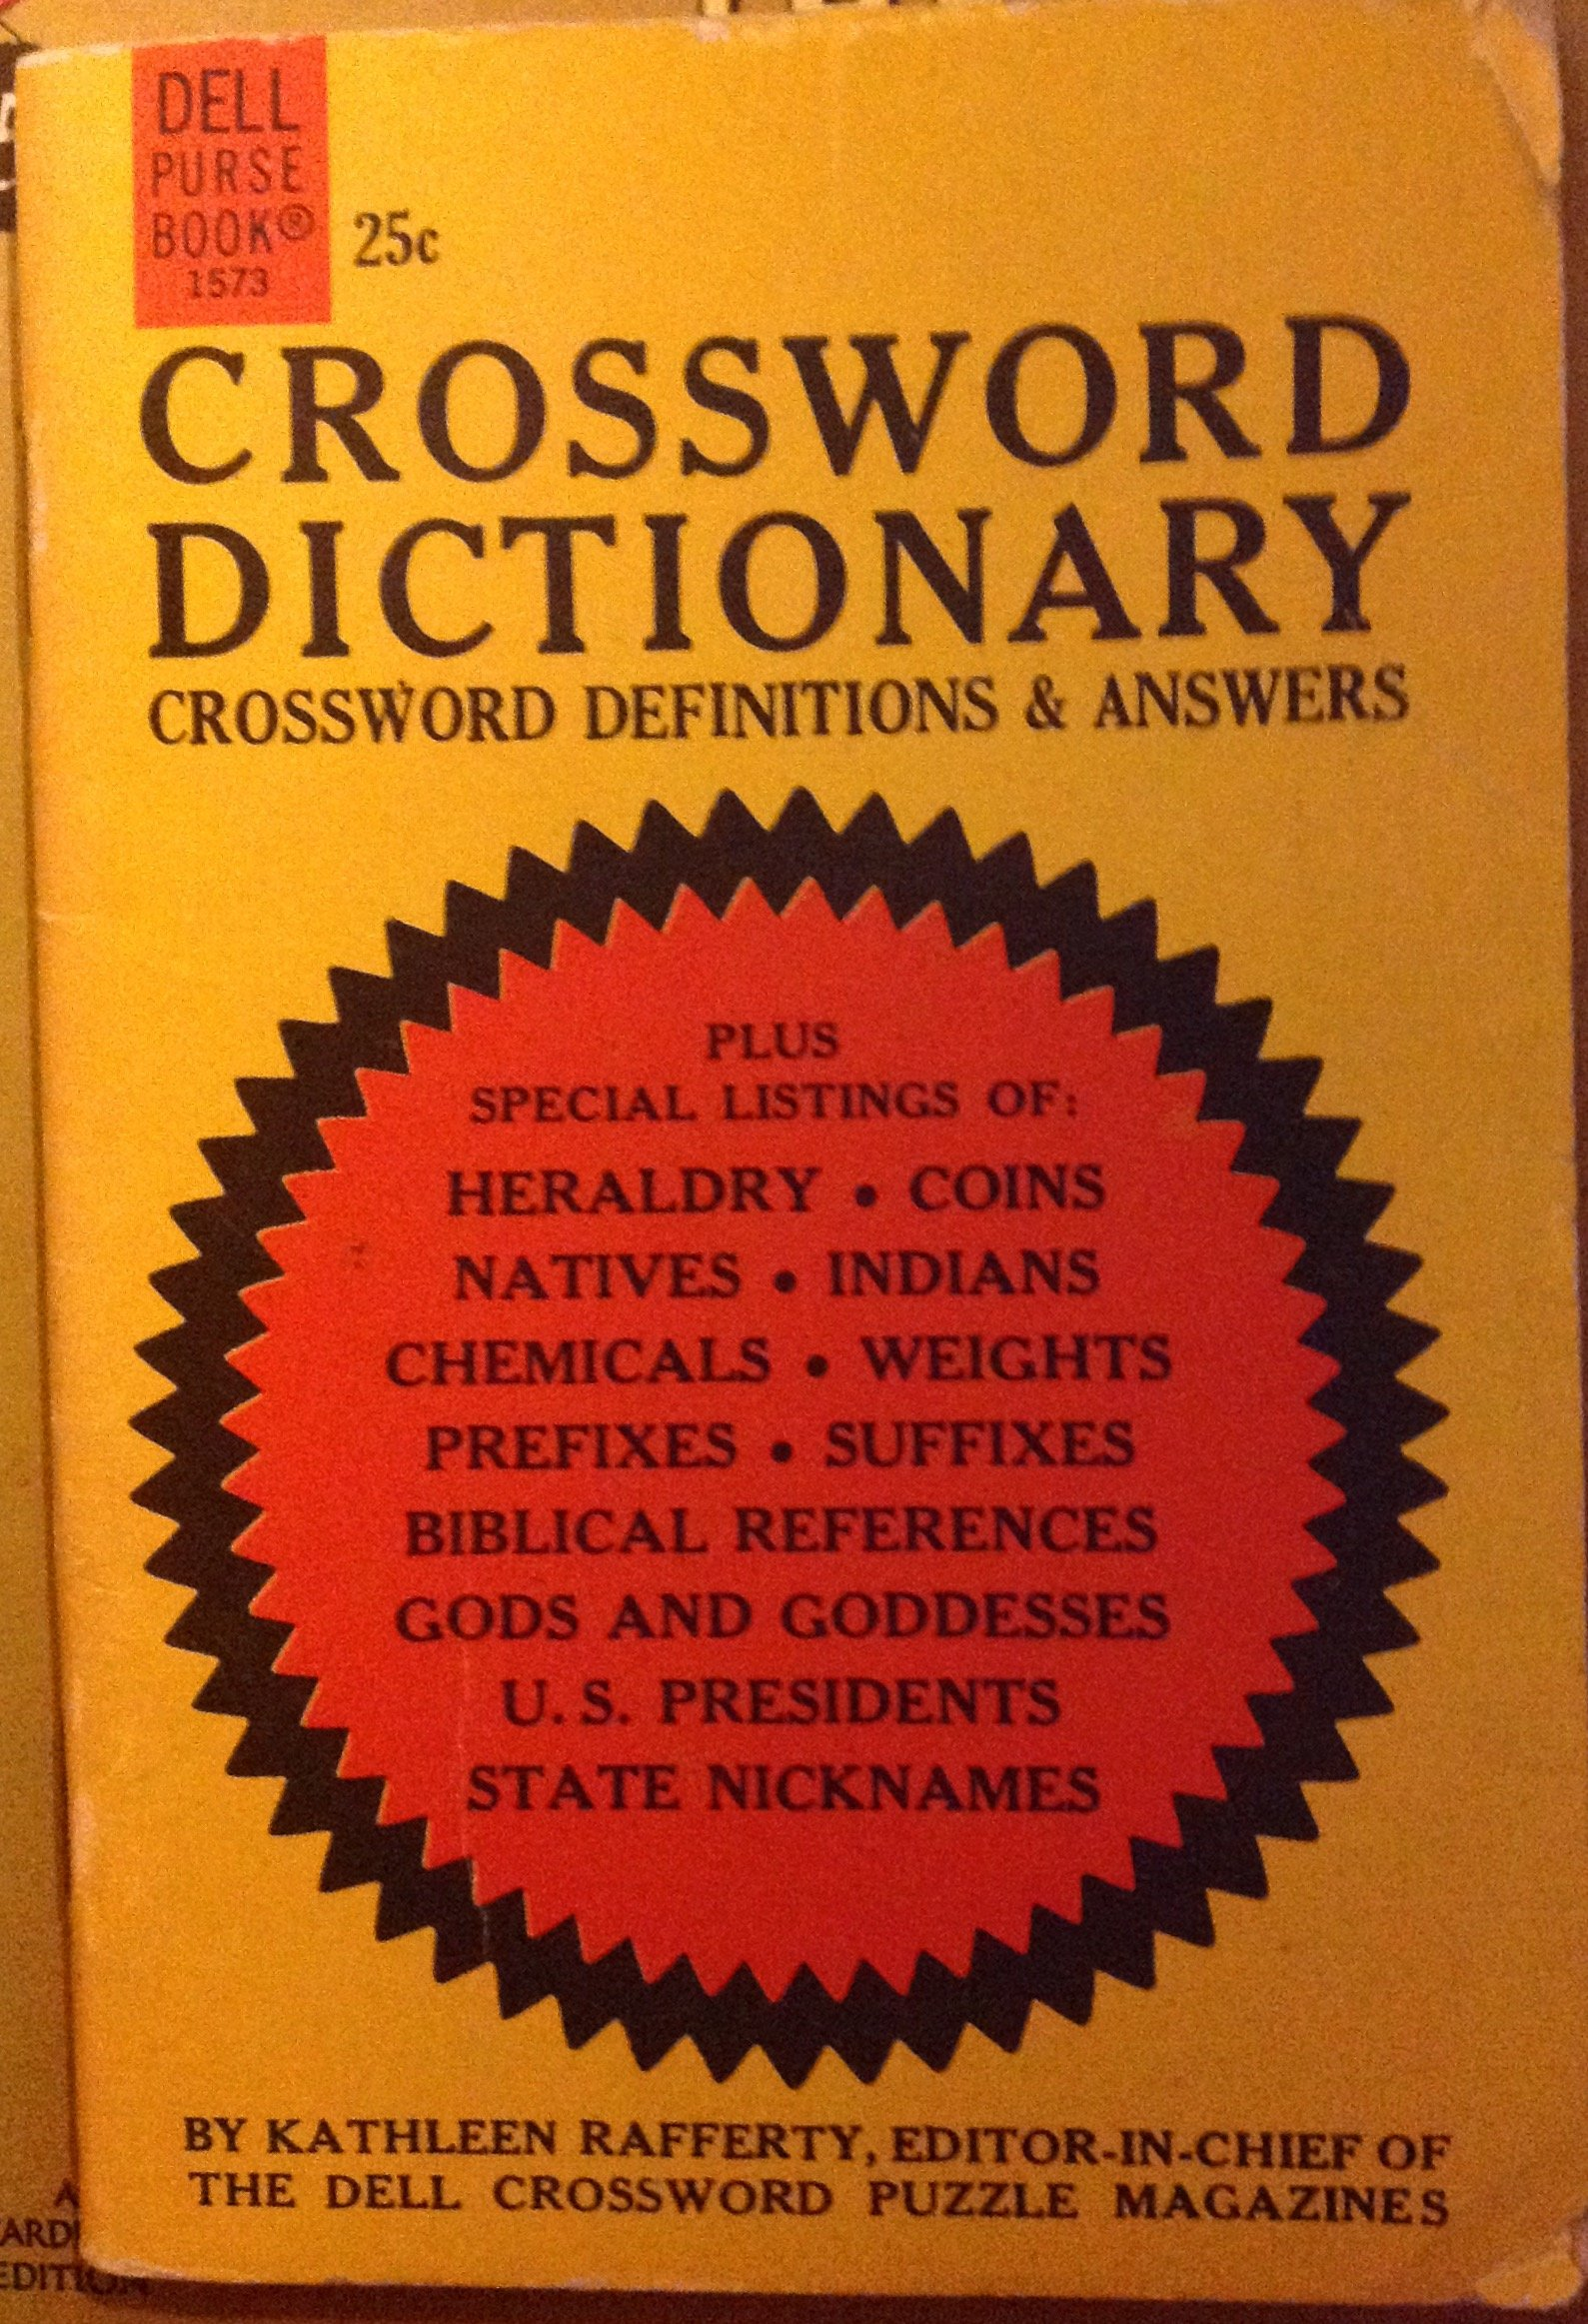 Crossword Dictionary Crossword Definitions & Answers Kathleen ...